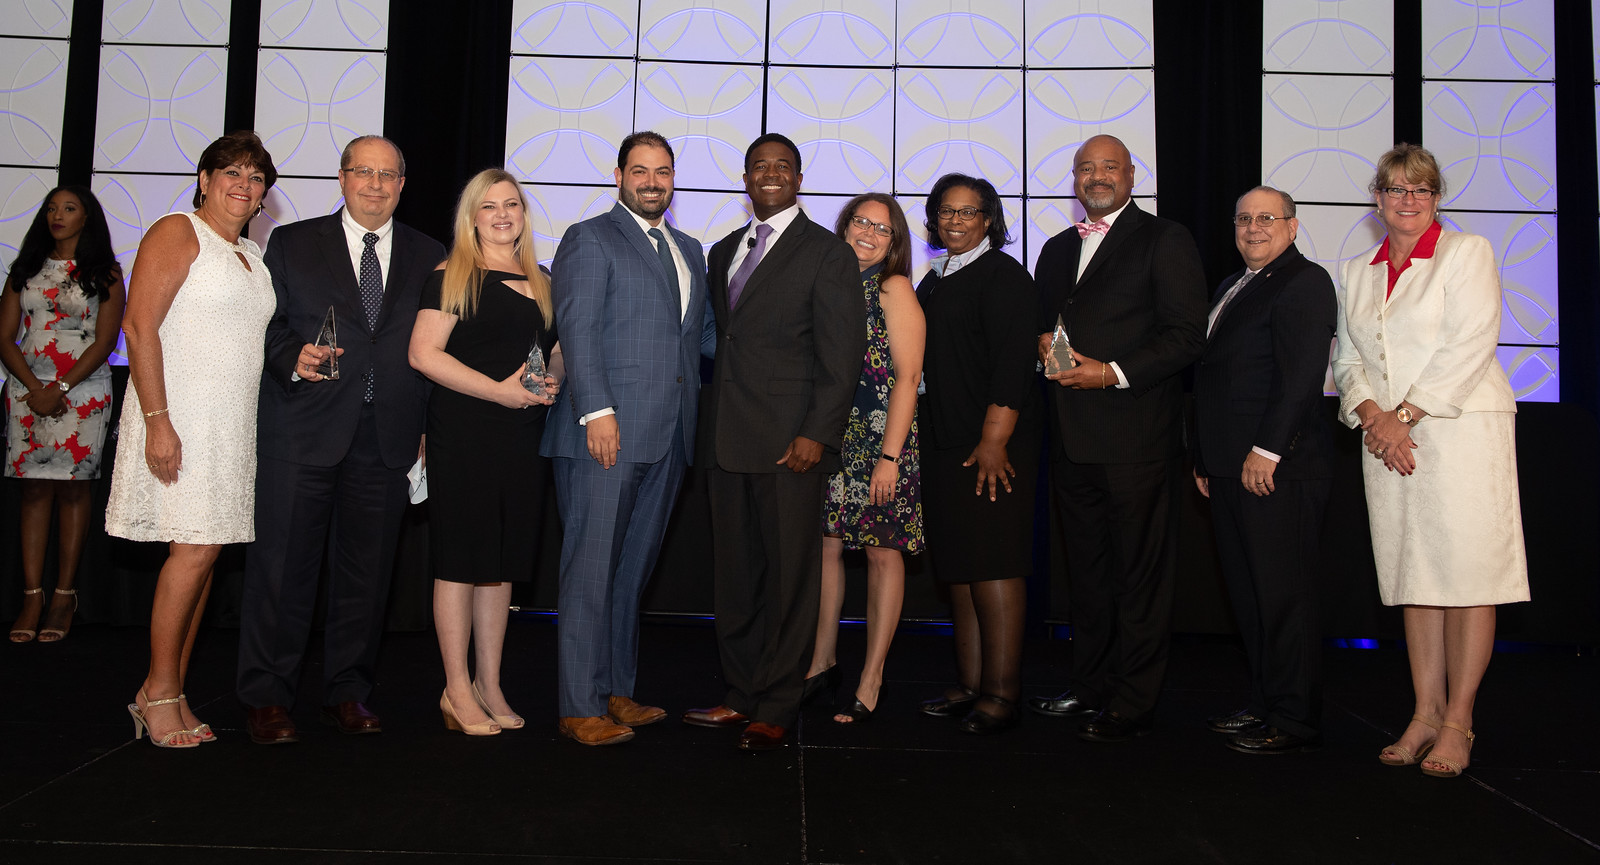 The Nunn-Perry Awards Dinner is held at the Rosen Center Hotel in Orlando, FL., Aug. 16, 2018. (U.S. Army photo by Joseph B. Lawson)